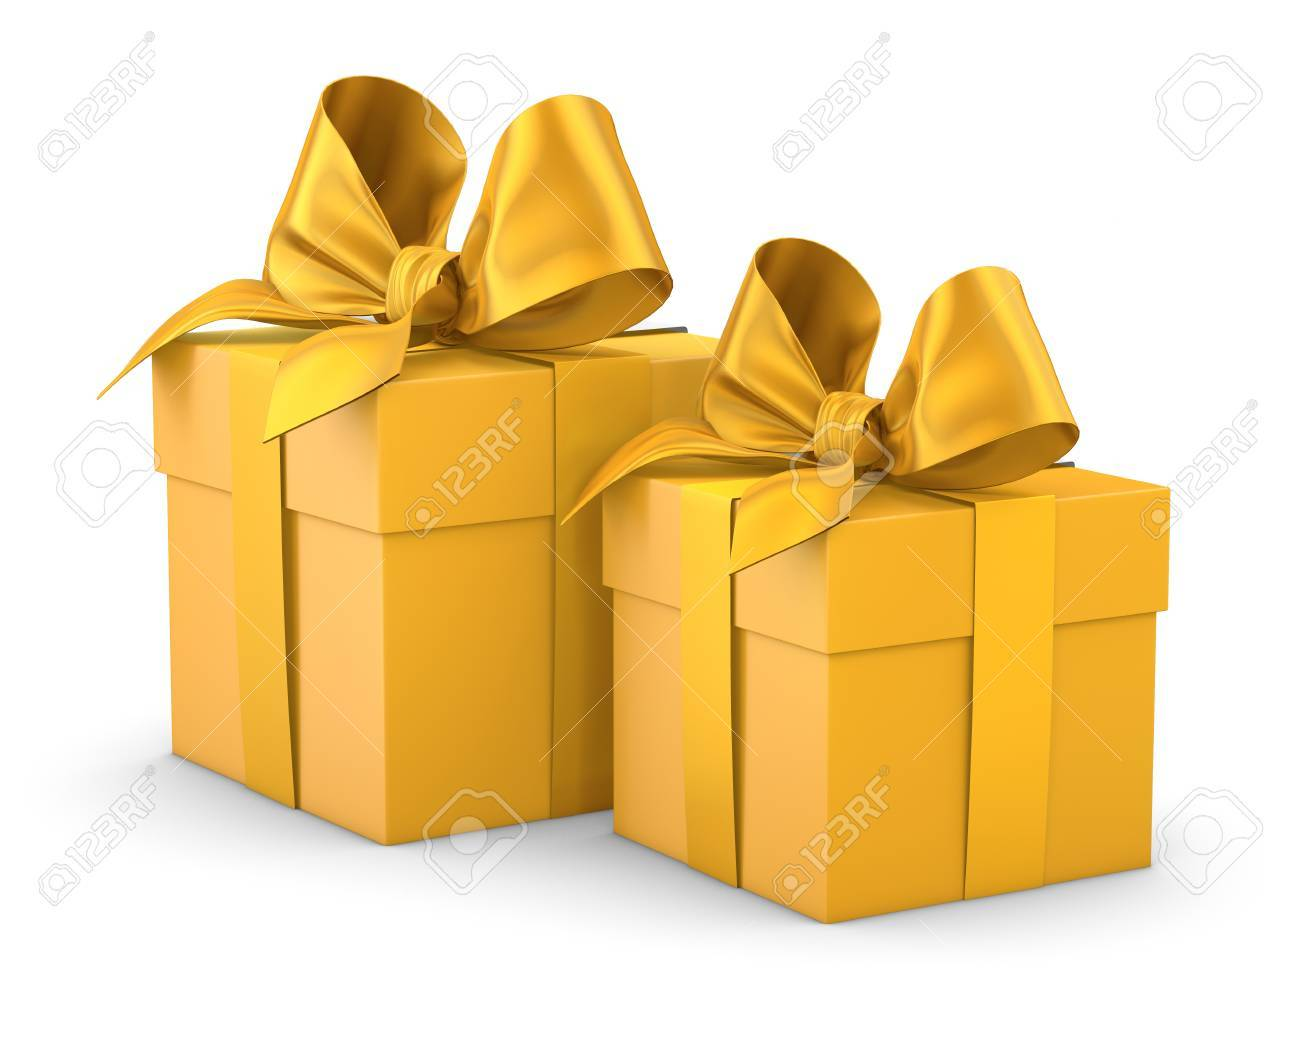 Gift boxes for christmas new years day 2 yellow gift boxes gift boxes for christmas new years day 2 yellow gift boxes white background 3d negle Image collections